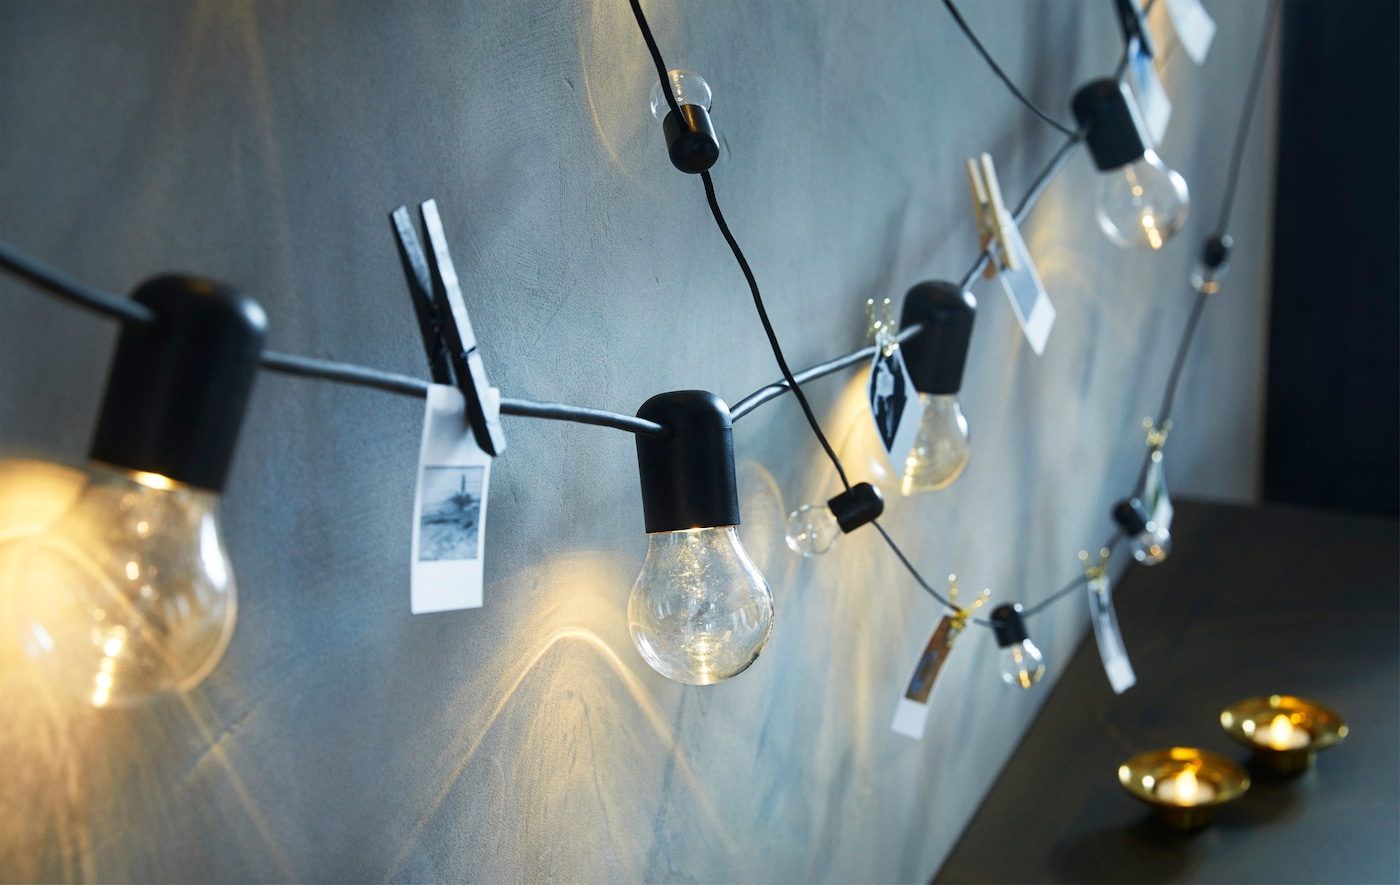 With one black SVARTRÅ LED lighting chain and one black IKEA BLÖTSNÖ LED lighting chain you can personalise a whole wall.